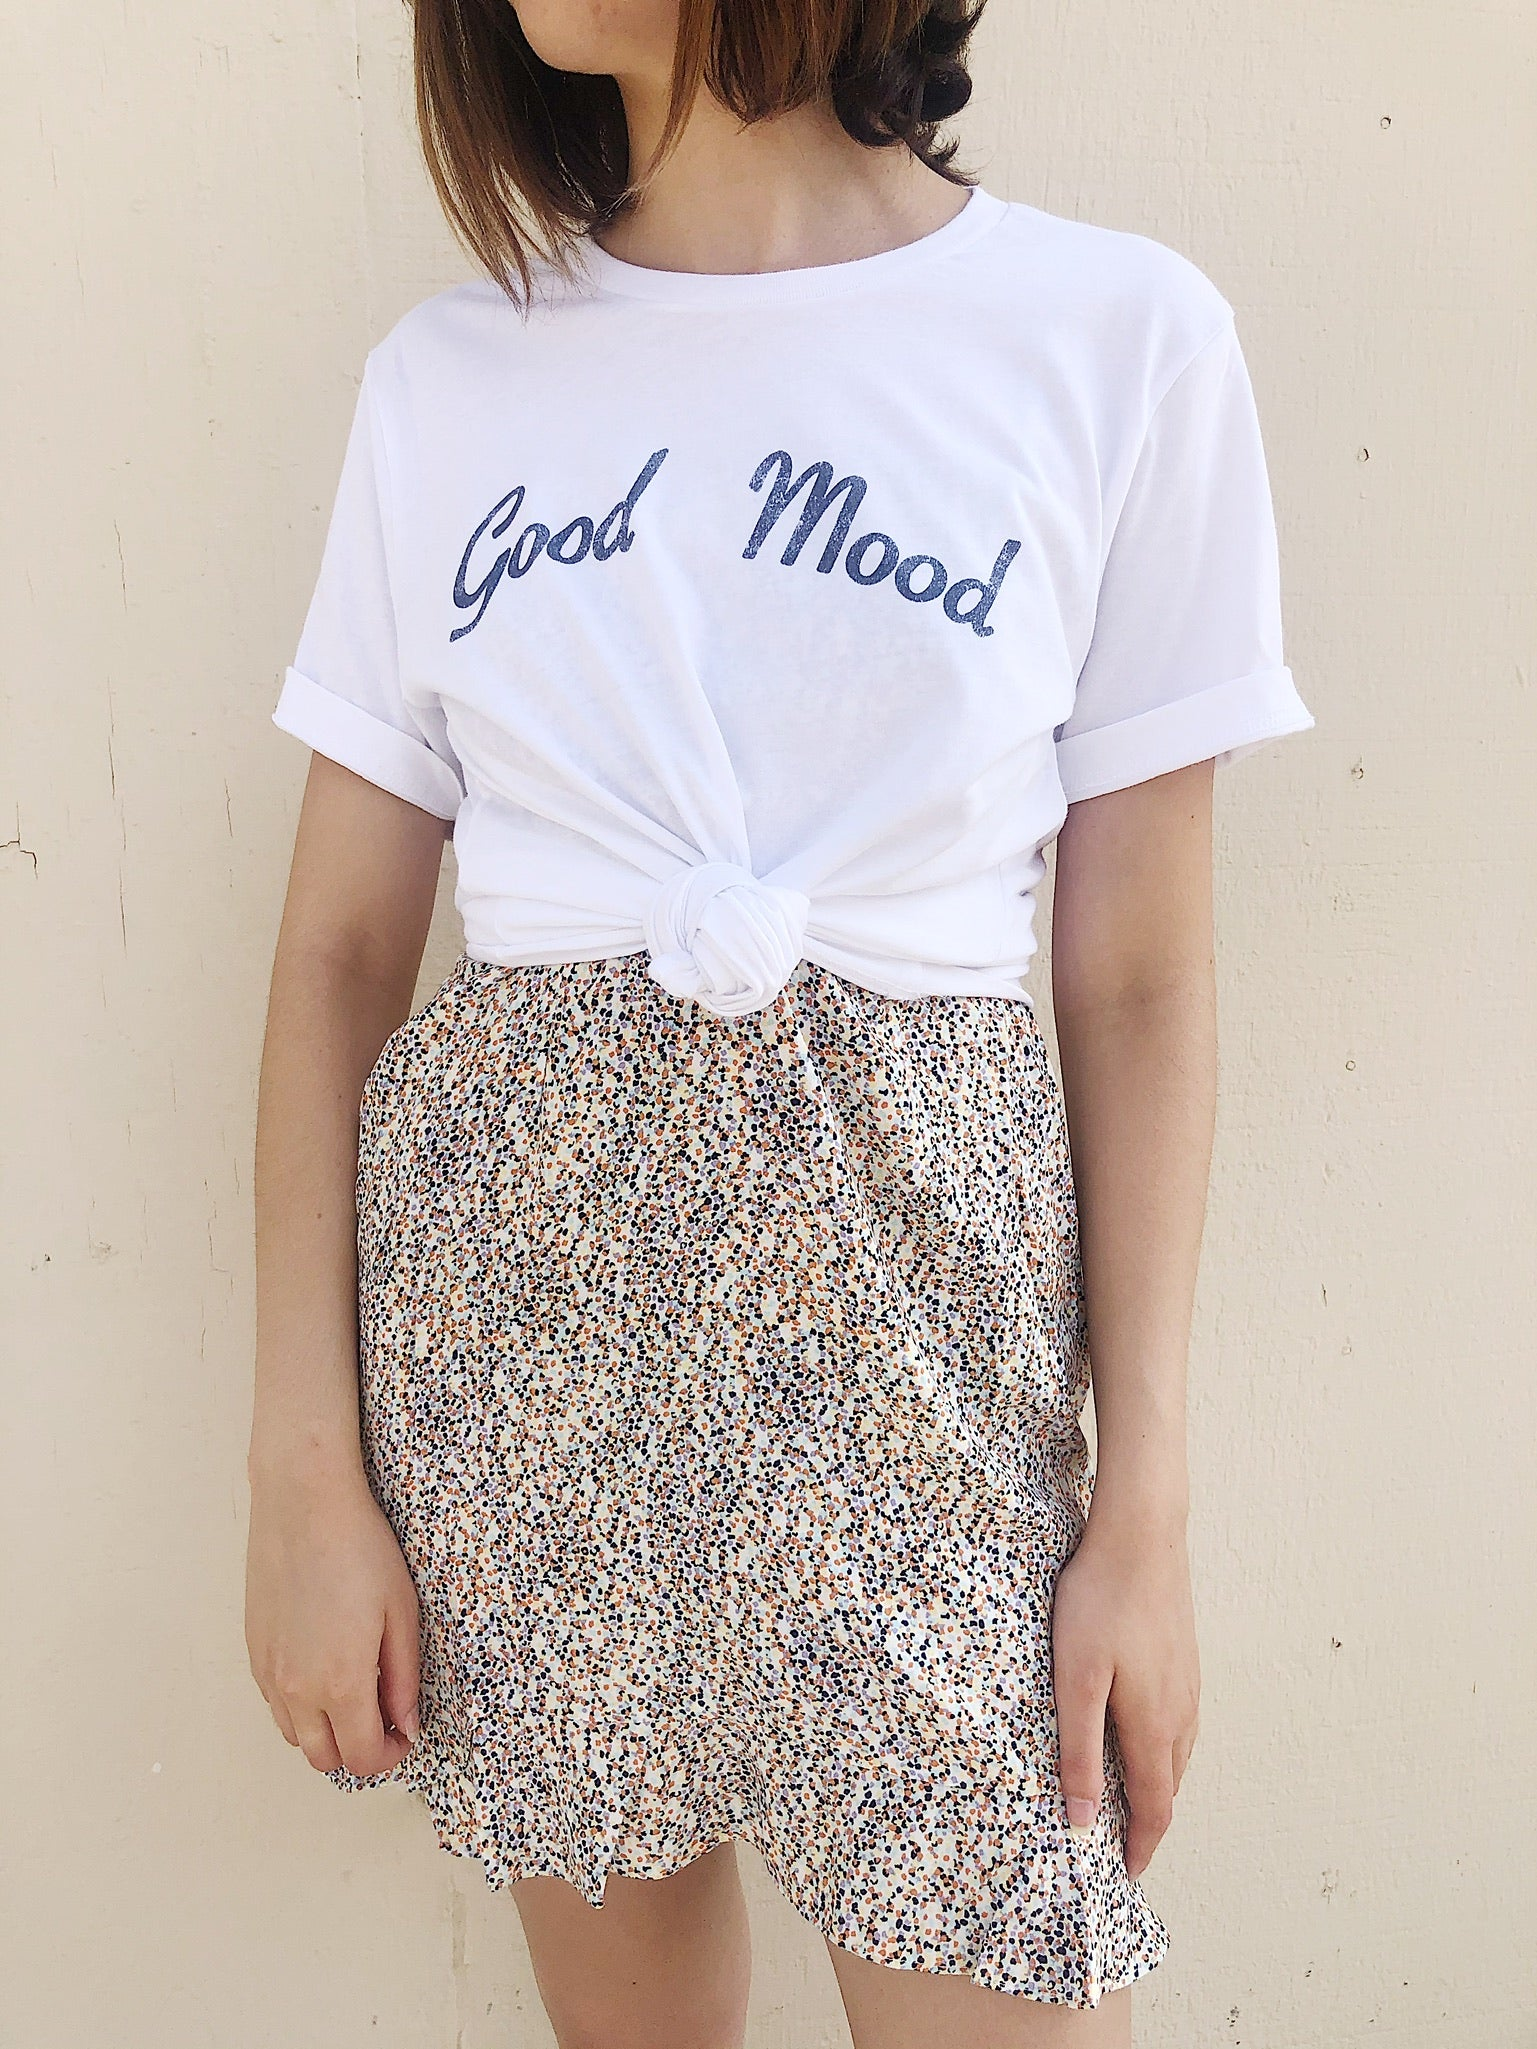 The Good Mood Graphic Tee